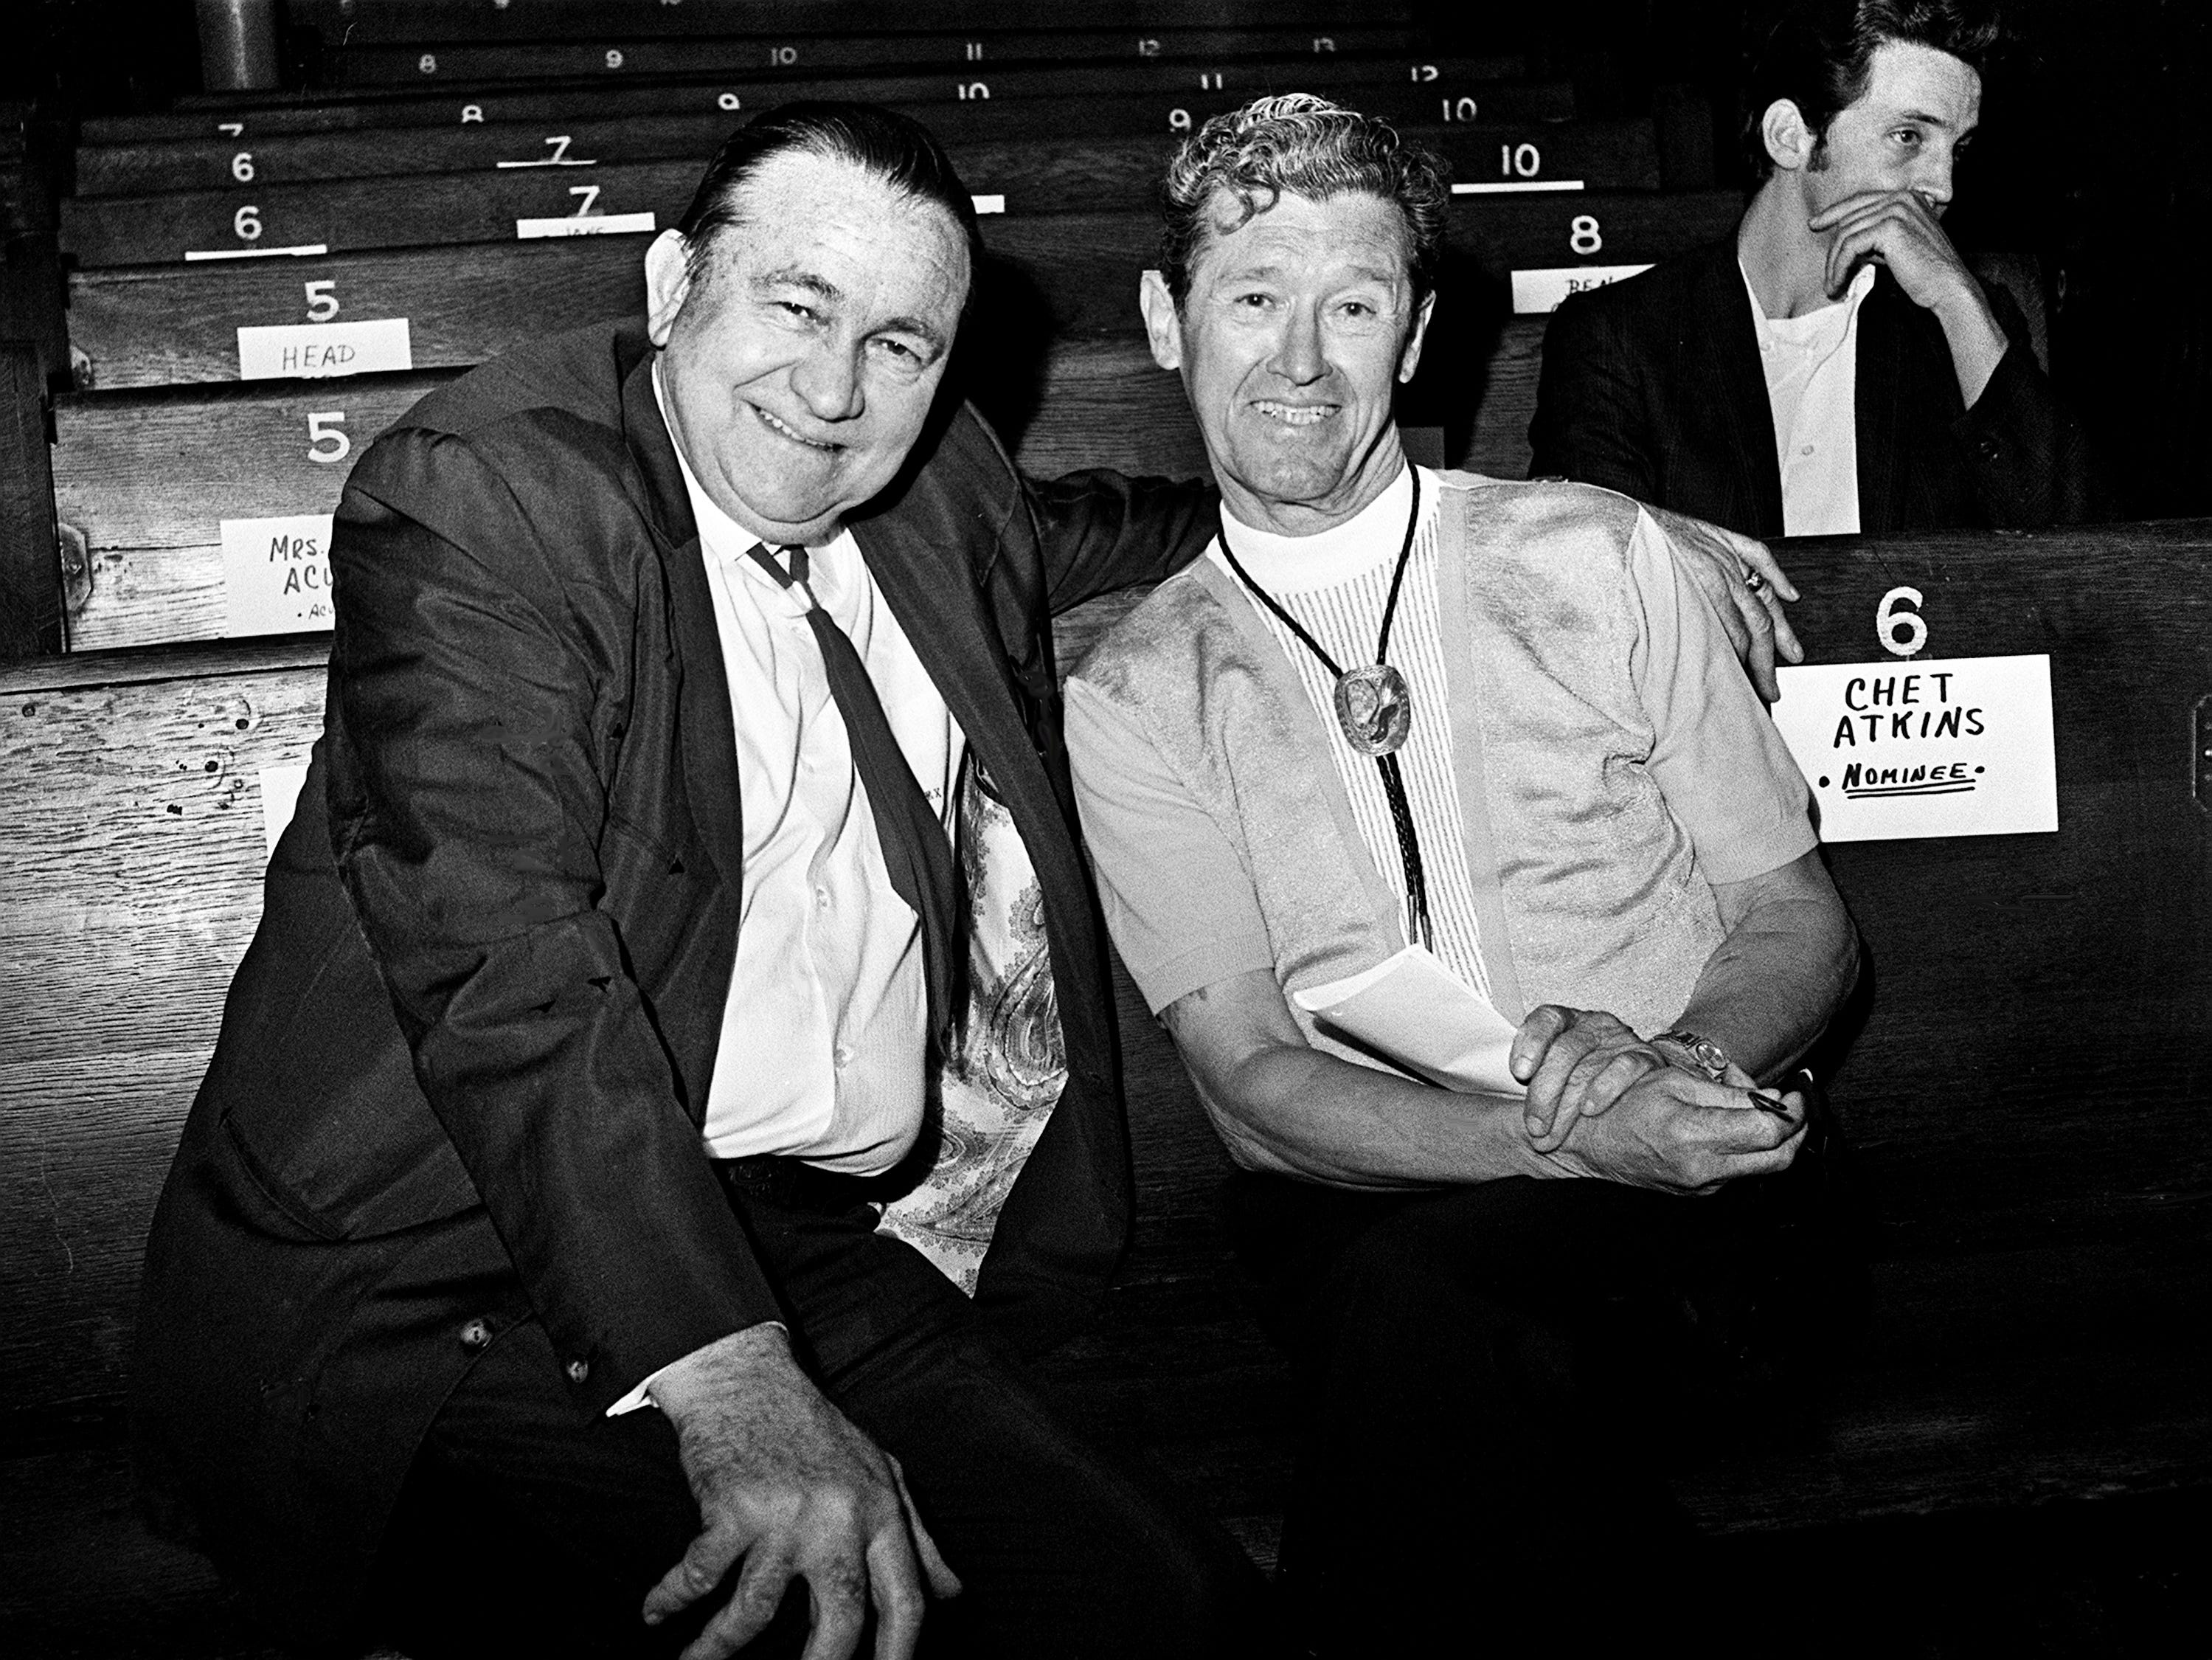 Tex Ritter, left, and Roy Acuff relax during rehearsal at the Grand Ole Opry on Oct. 18, 1968, for that night's CMA Awards show.